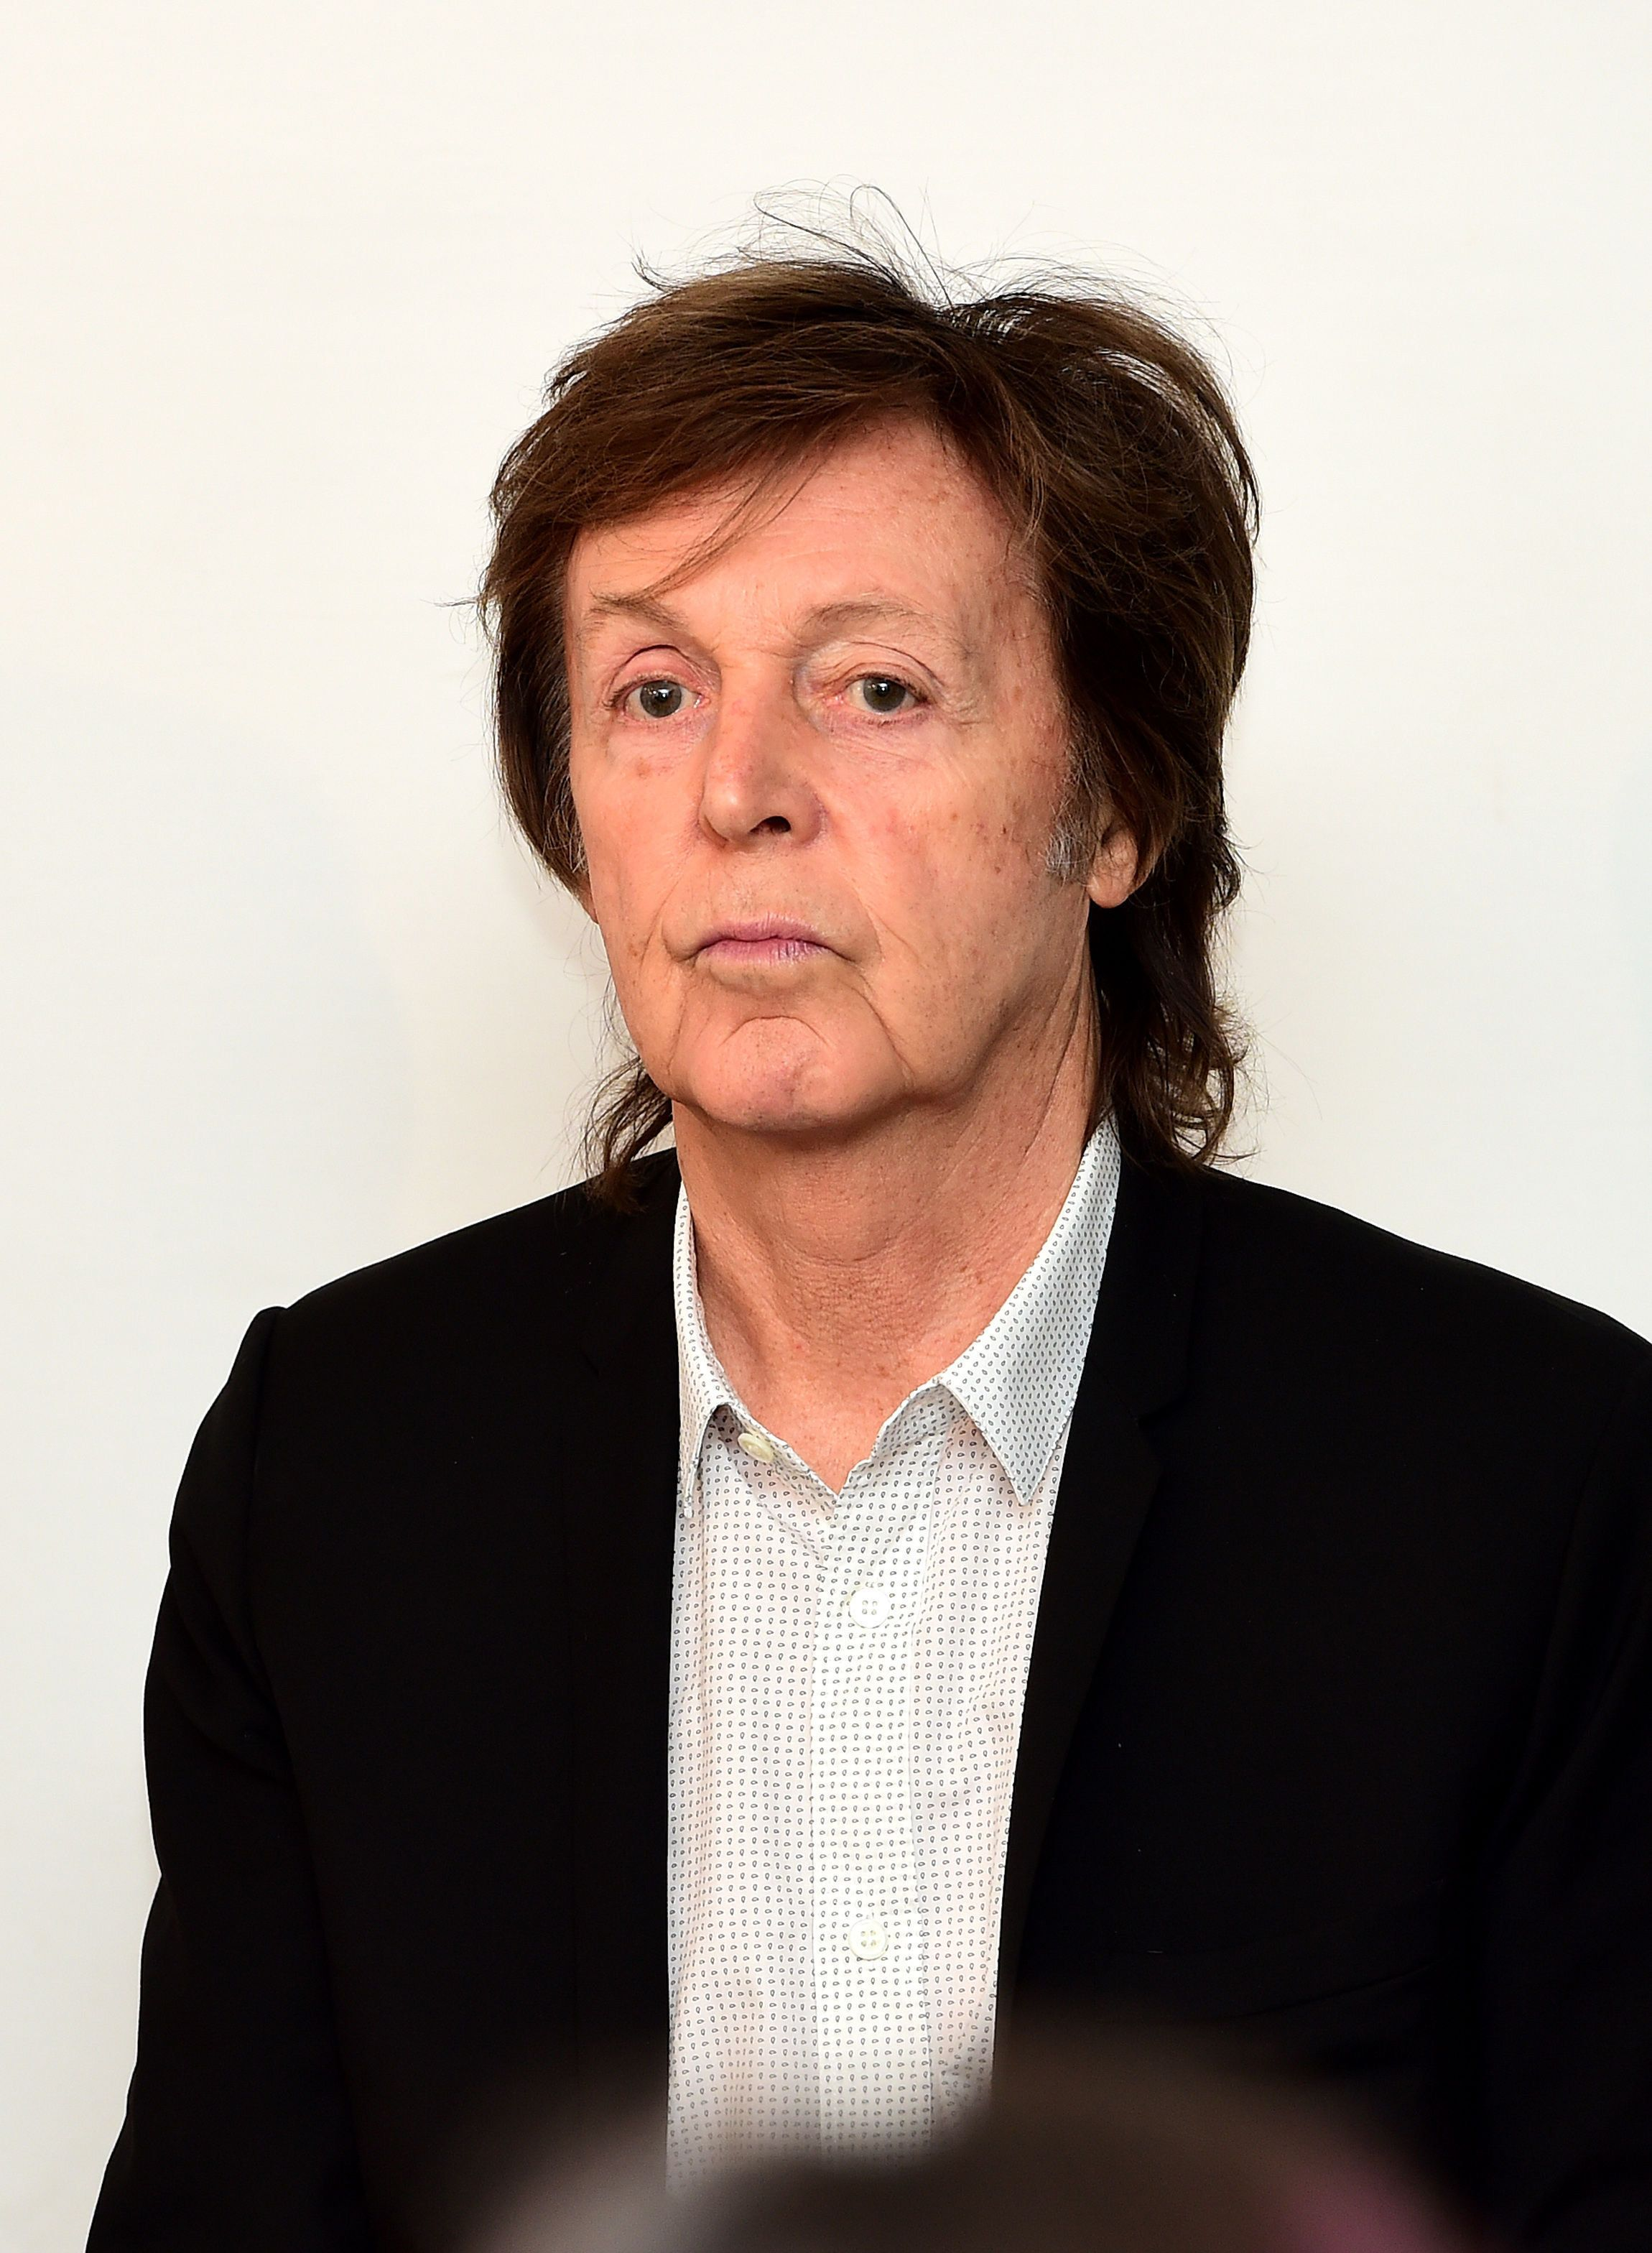 Paul McCartney Admits To Being 'Racist' Growing